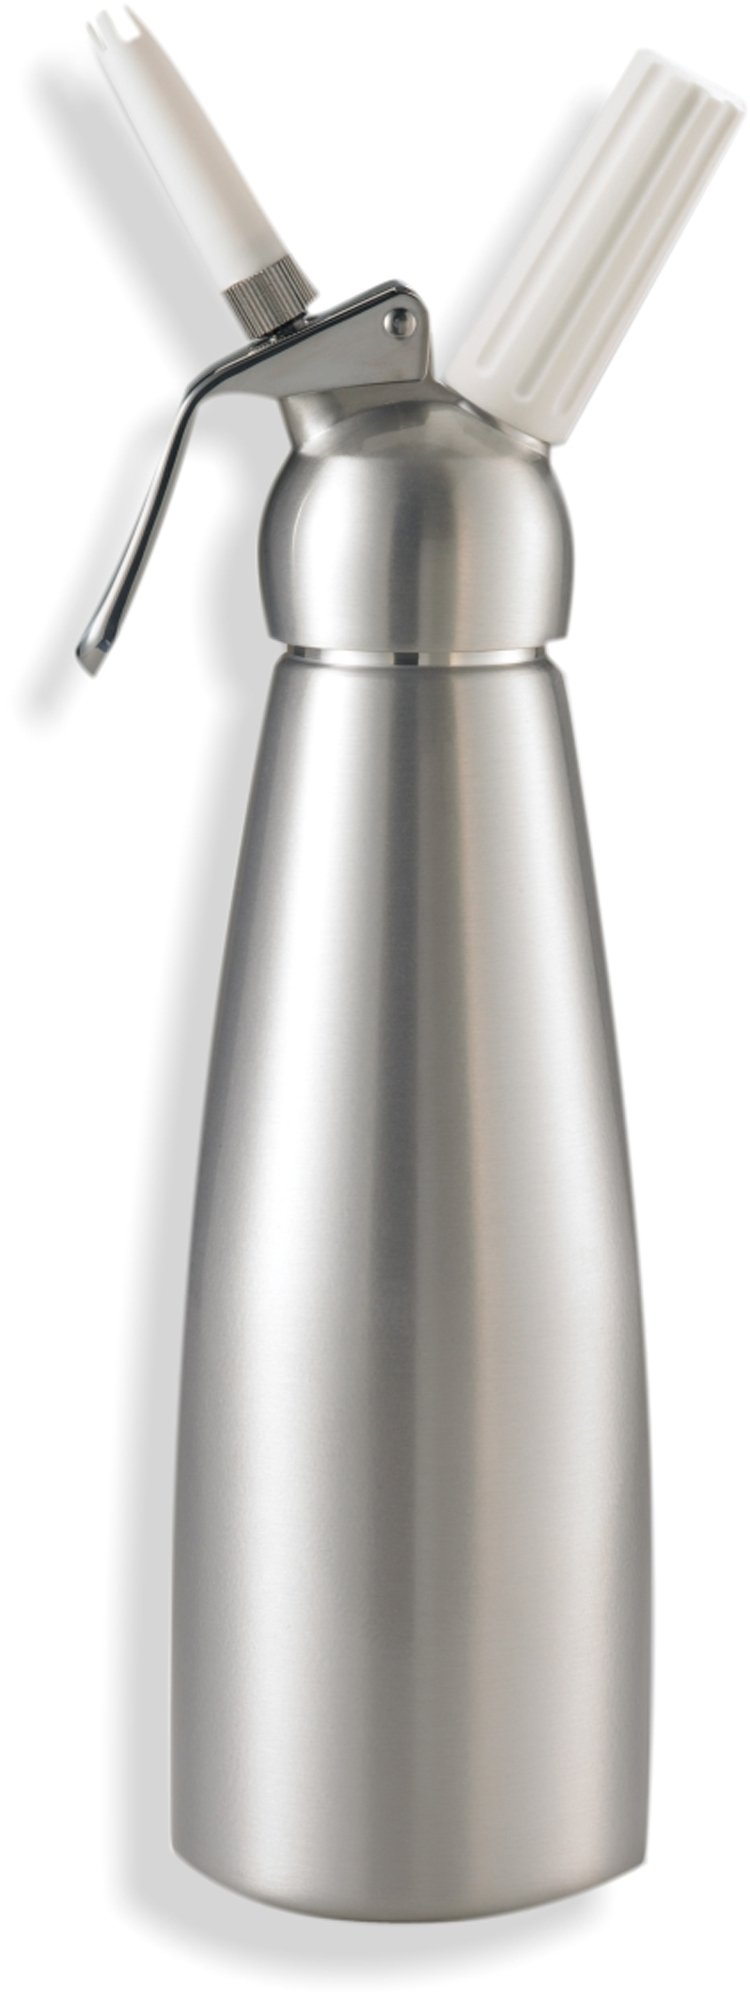 Mosa Aluminum Culinary Whipped Cream Dispenser image